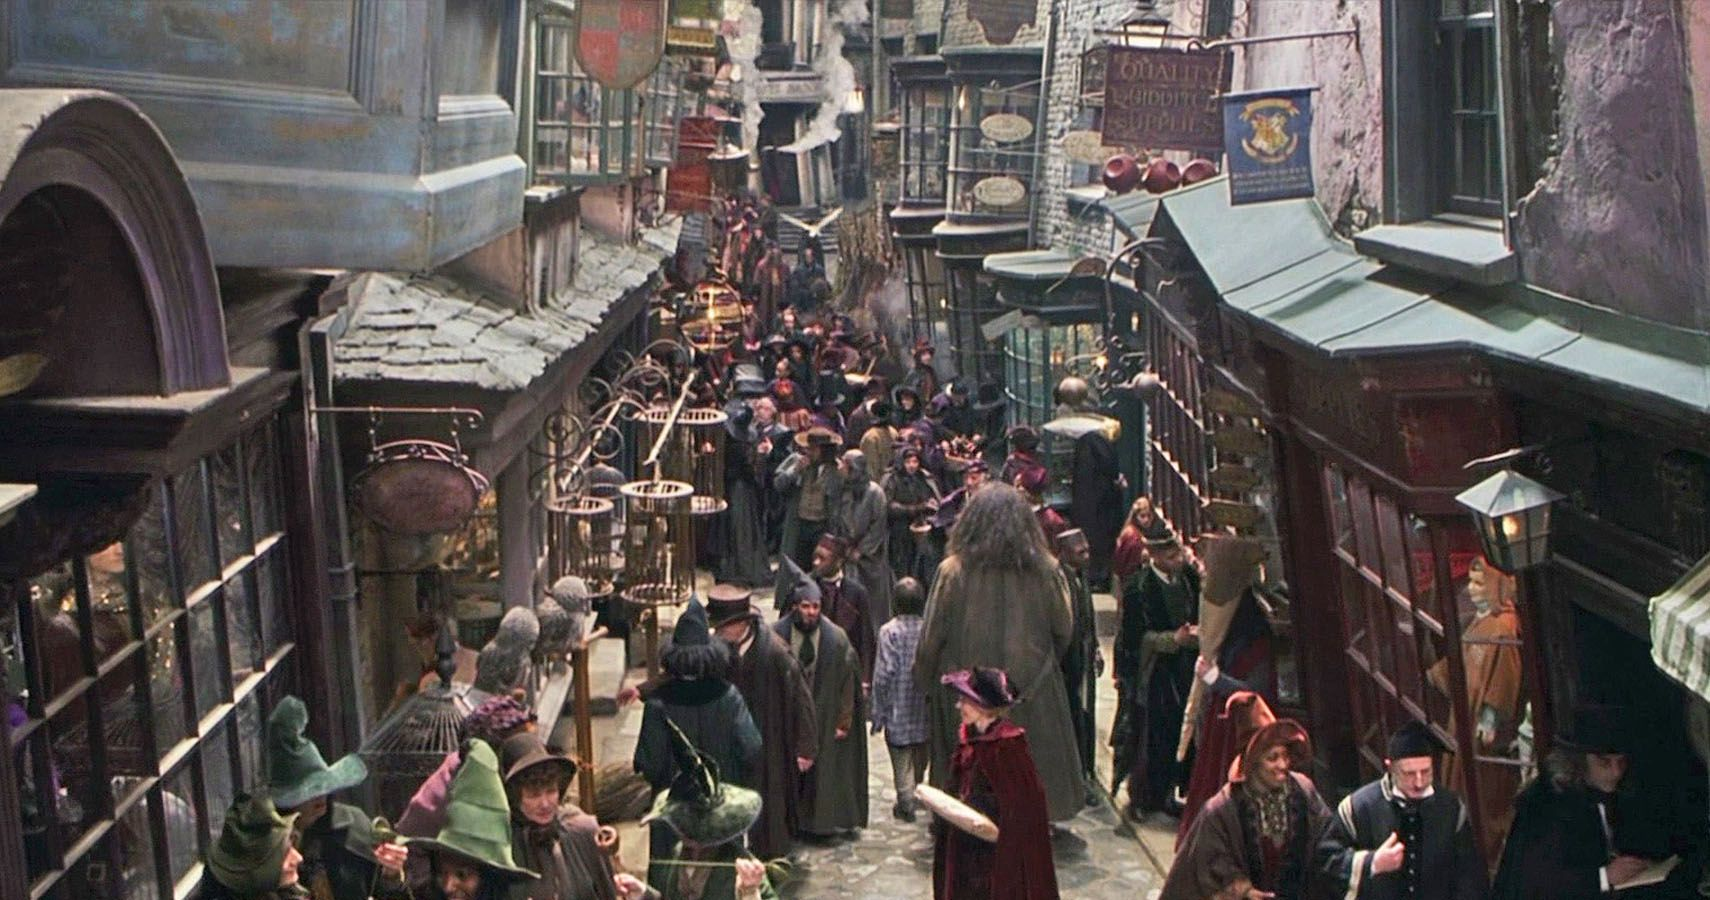 Harry Potter: Every Shop In Diagon Alley, Ranked | ScreenRant